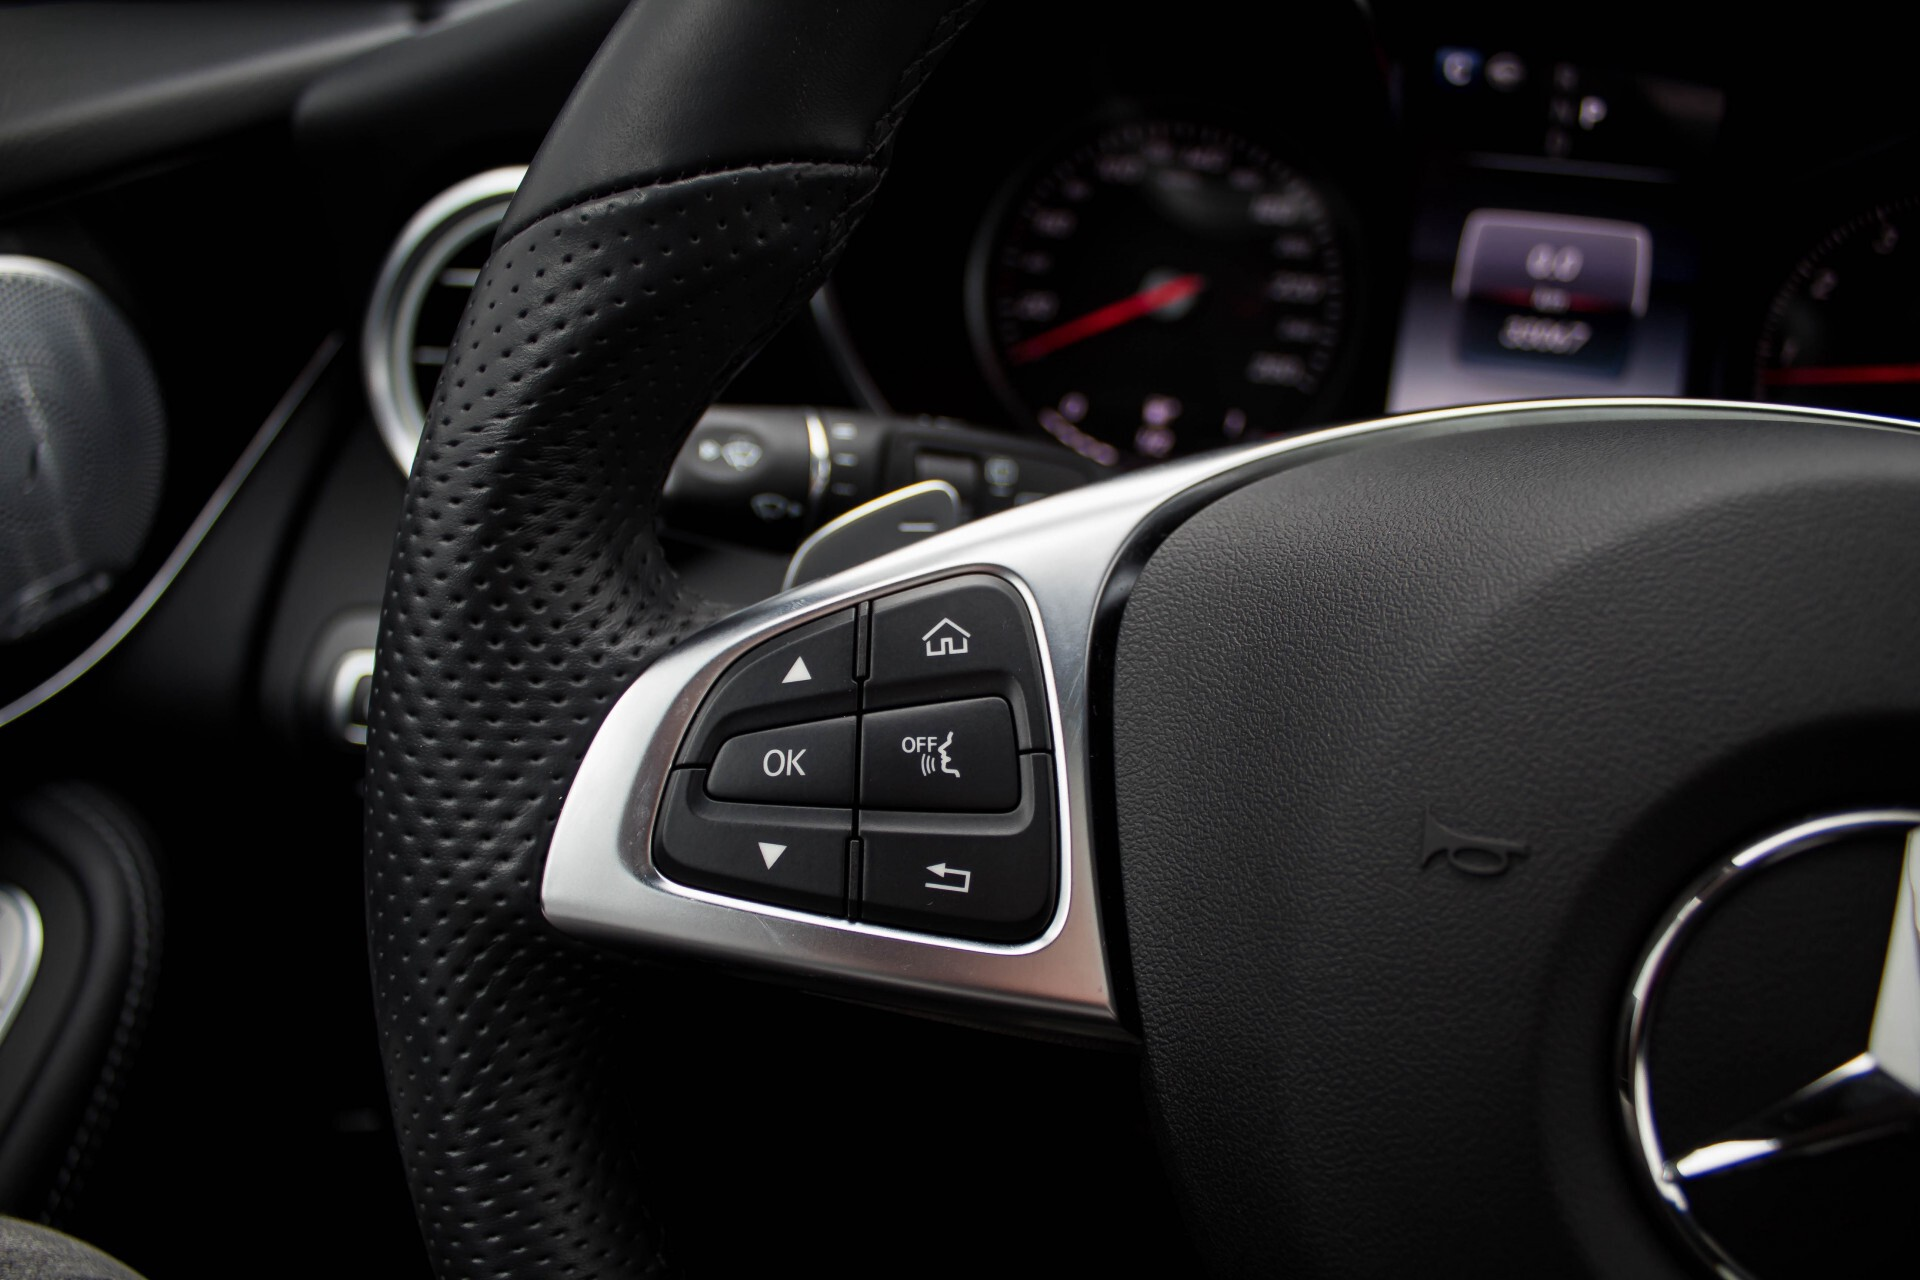 Mercedes-Benz GLC-Klasse 300 4-M AMG Panorama Distronic/Keyless/Burmester/Memory/Night Aut9 Foto 9